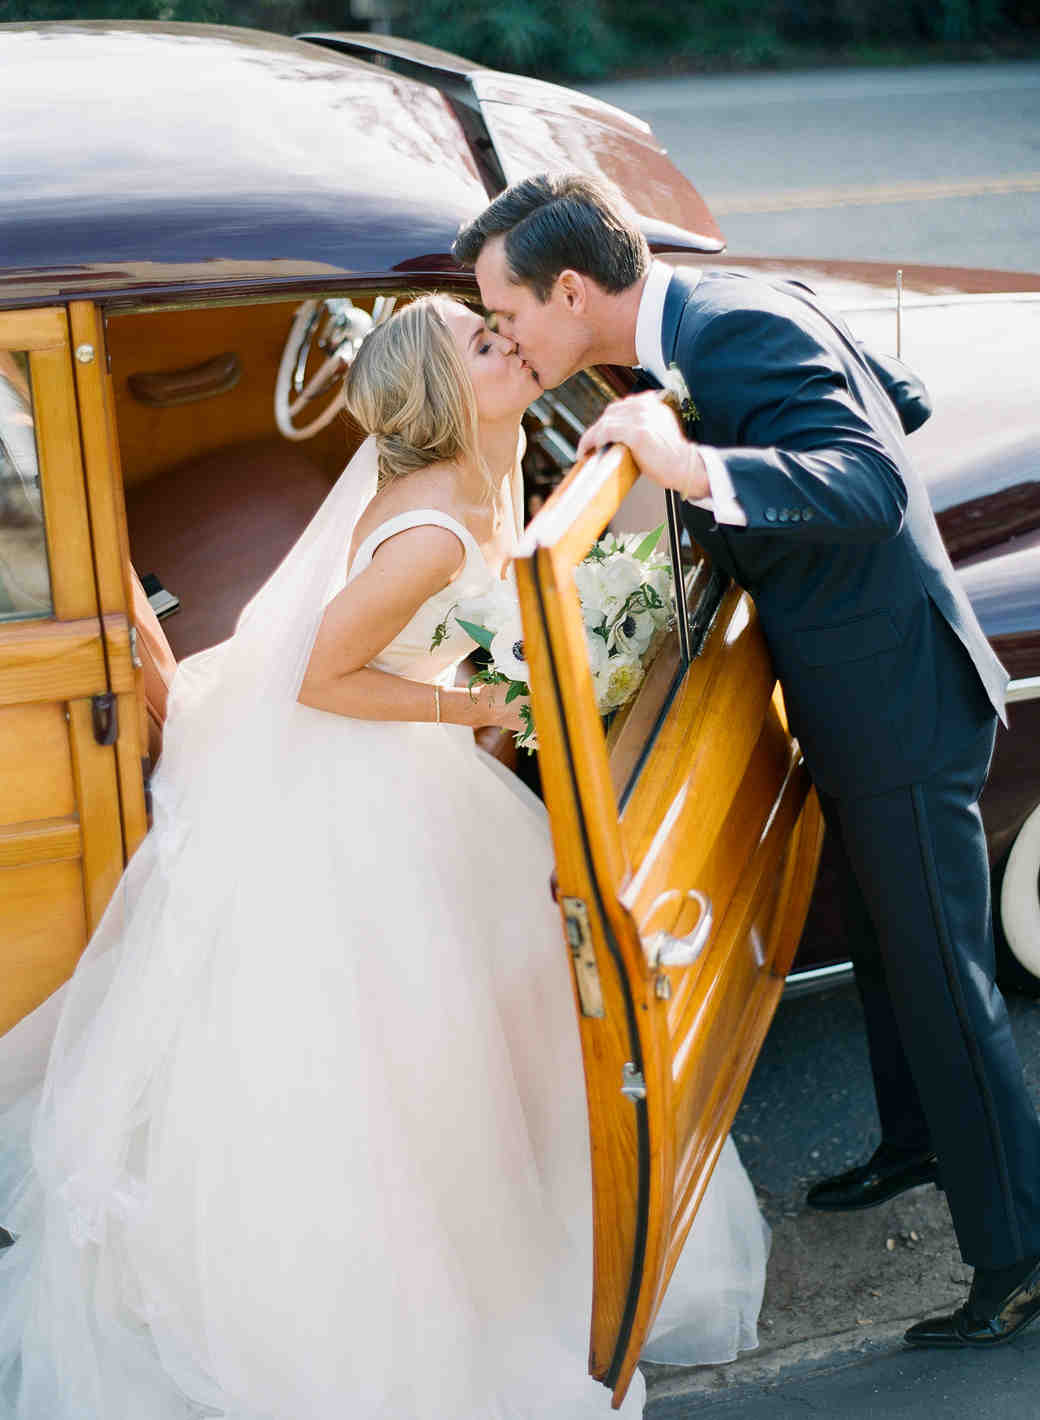 9 Things You Should Know Before Booking a Wedding Videographer